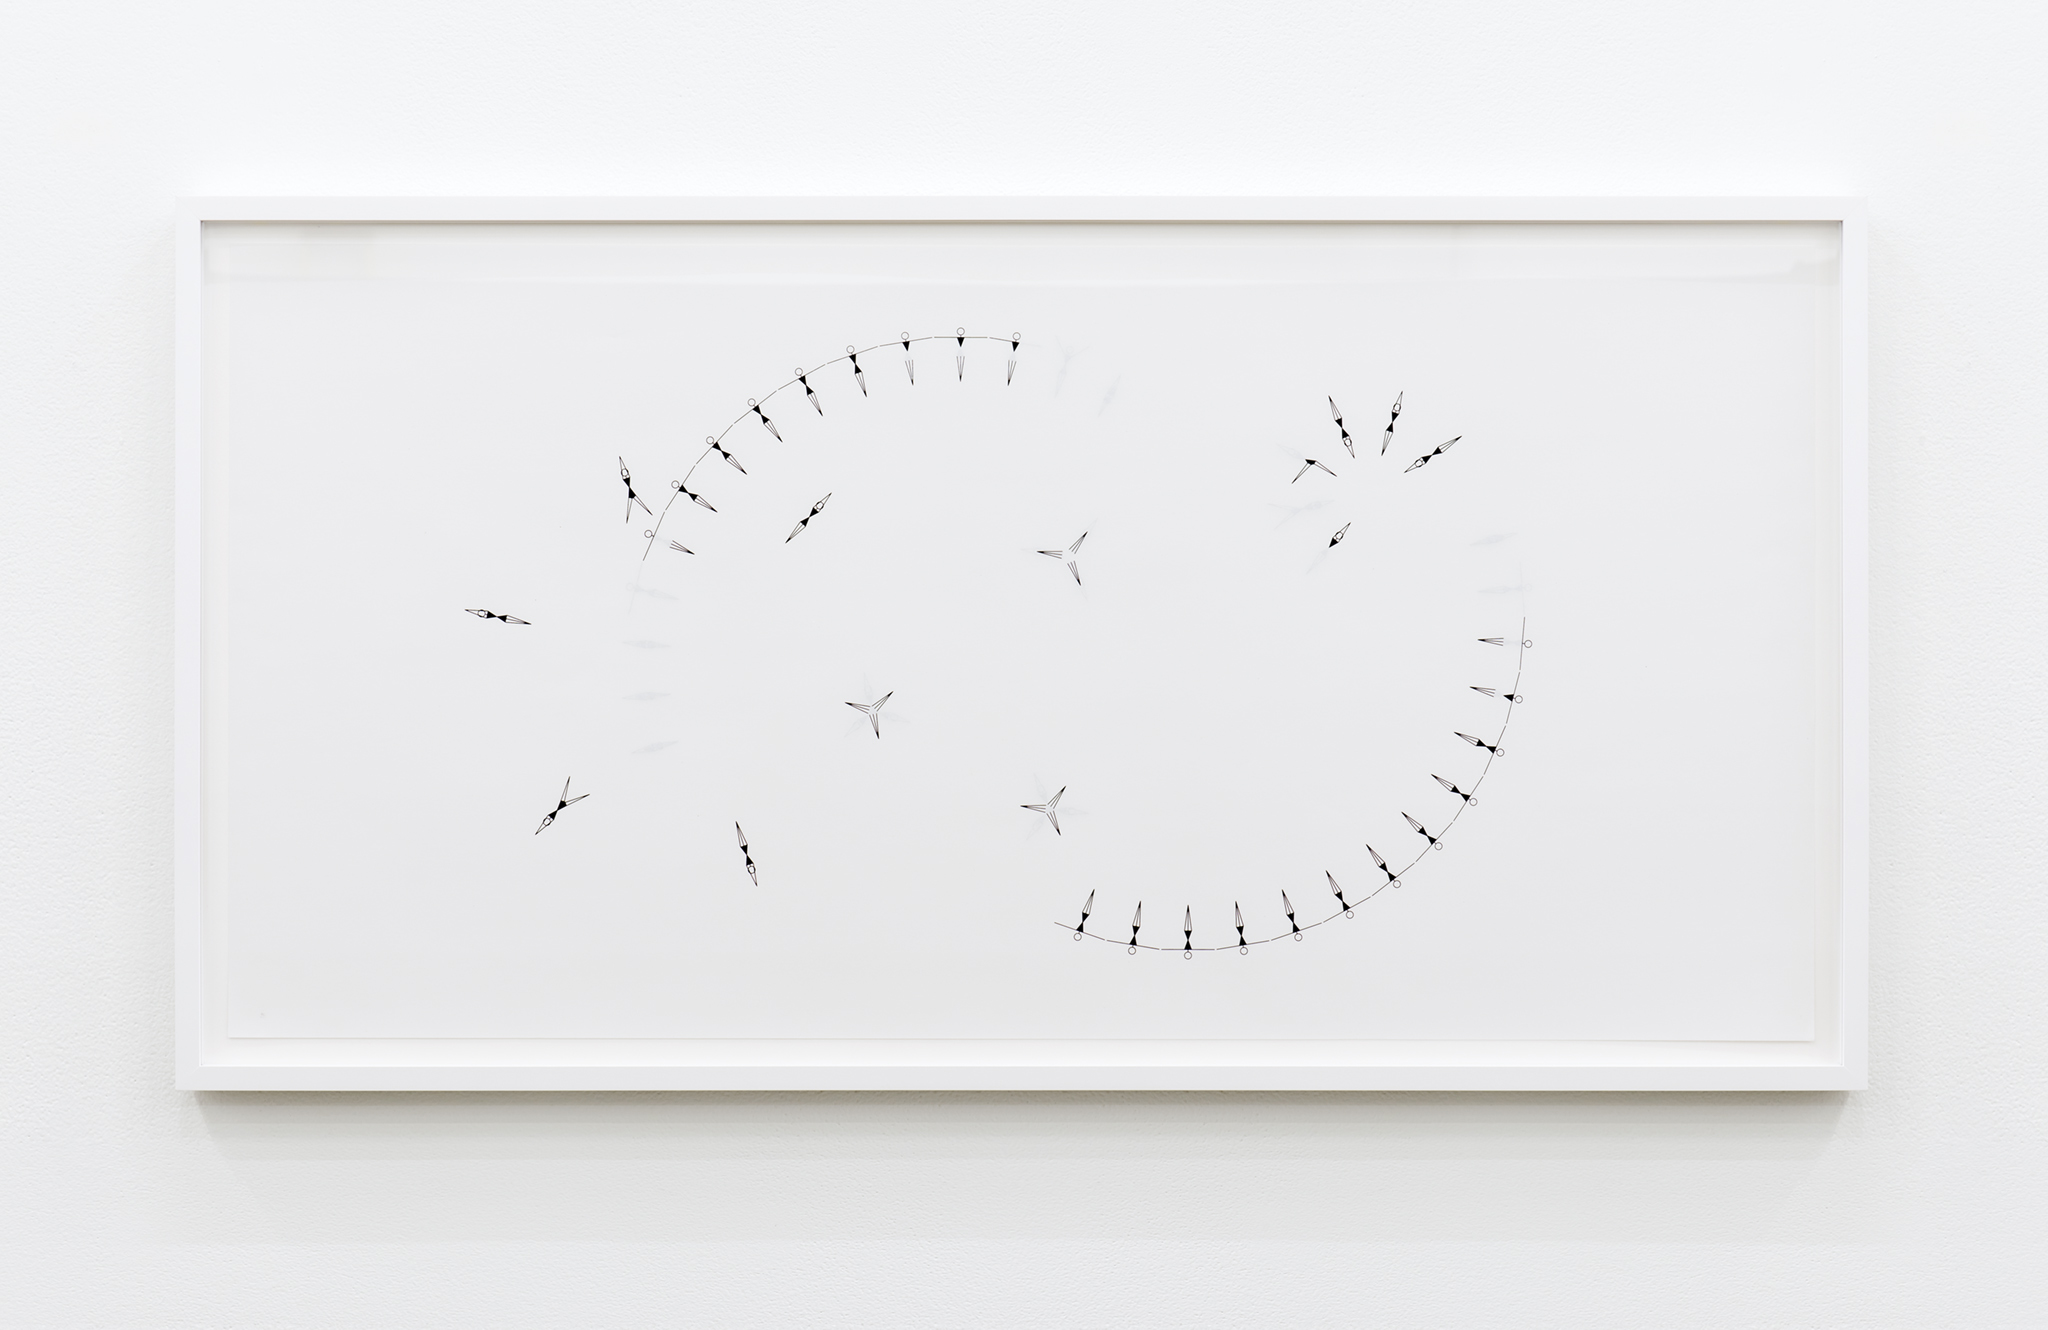 ​​​​​​​​​​​Janice Kerbel, Sync (Split Circle), 2017, double sided silkscreen print on paper, 33 x 17 in. (84 x 42 cm)​​​​​​​​​​​​​ by